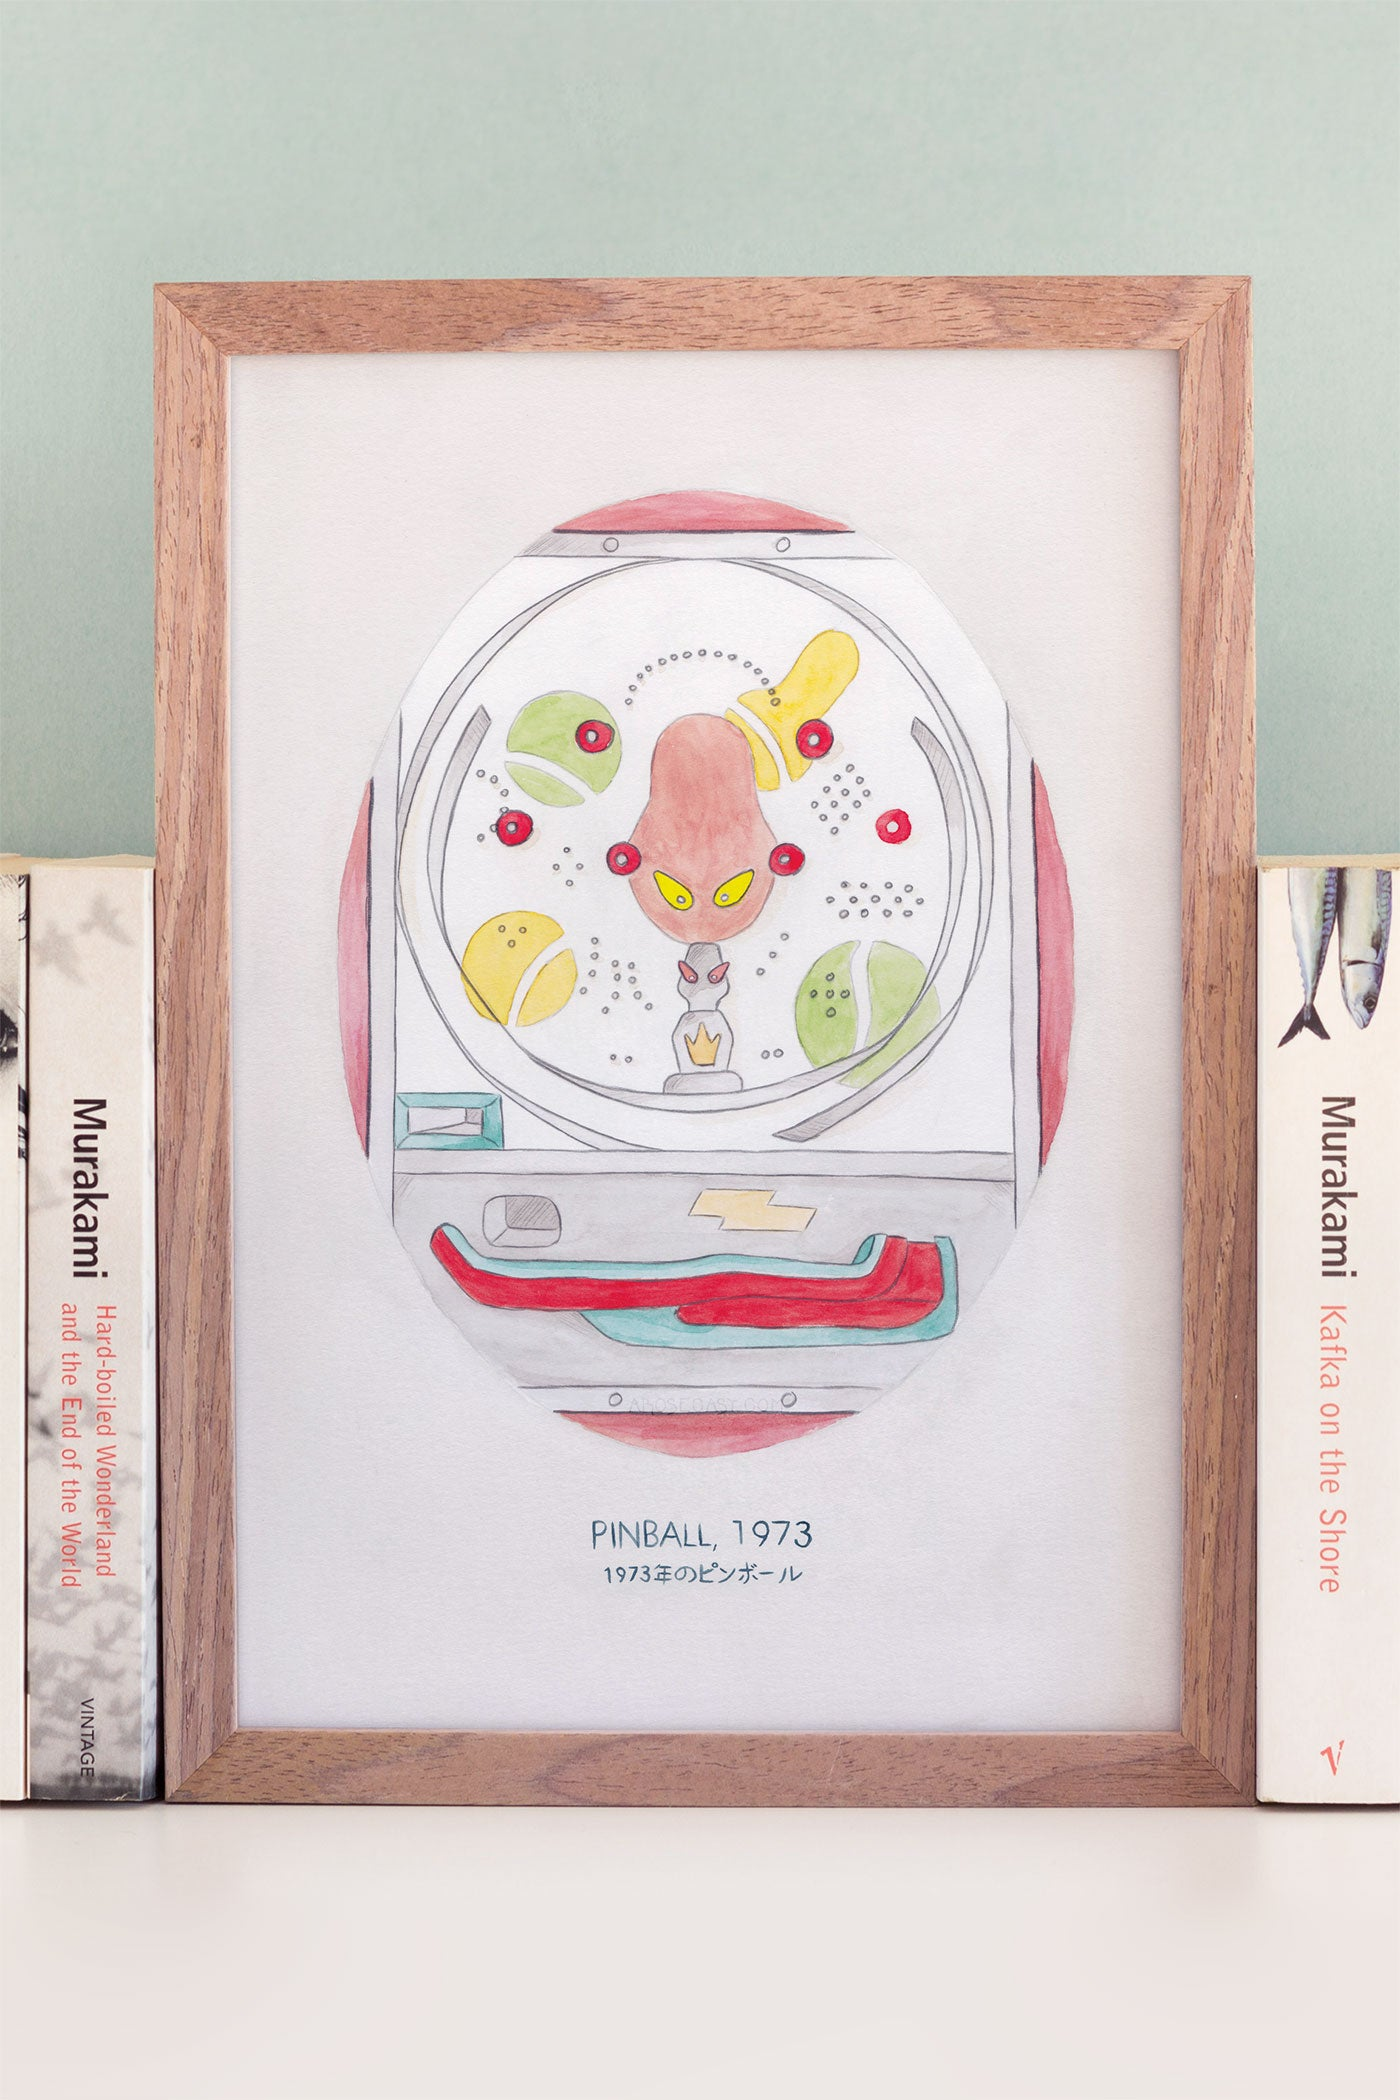 Haruki Murakami's Pinball, 1973 A4 Watercolour Novel Illustration